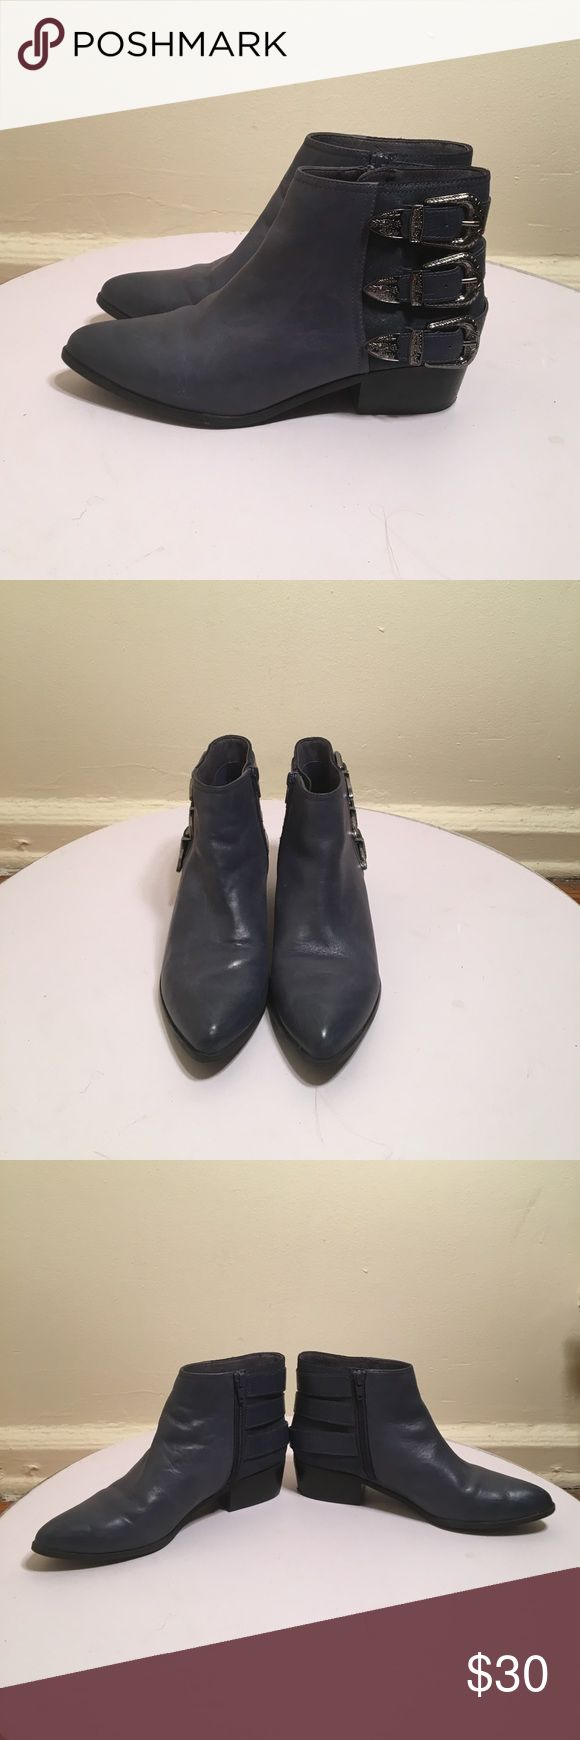 🛫TAKE OFF WESTERN BOOTIE🛫 Navy Blue western ankle bootie. Inside zip. 3 onyx color buckles with straps. Good condition bootie.heel has a tiny nick. Size 8.5 Aldo Shoes Ankle Boots & Booties